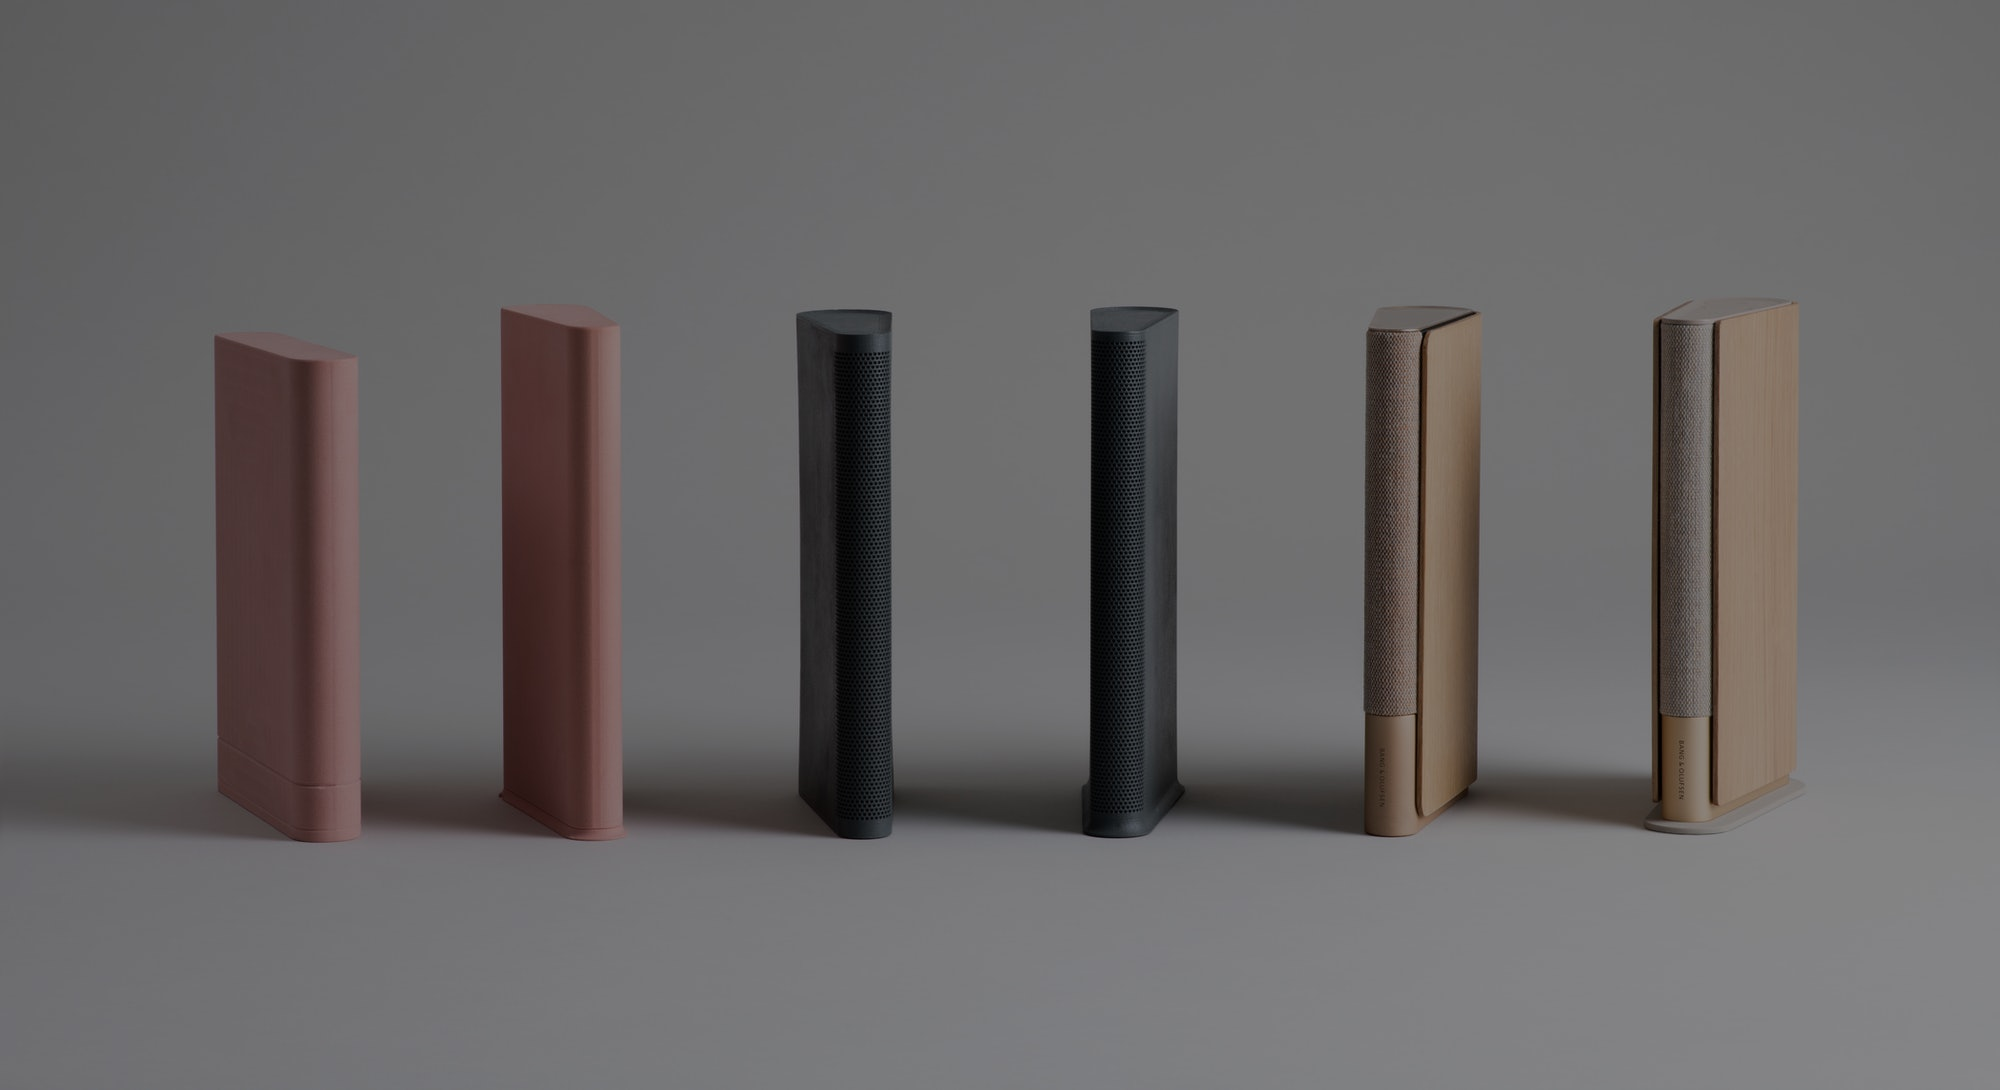 Lean speakers in golden and black tones by Bang and Olufsen. The pink ones are size models.